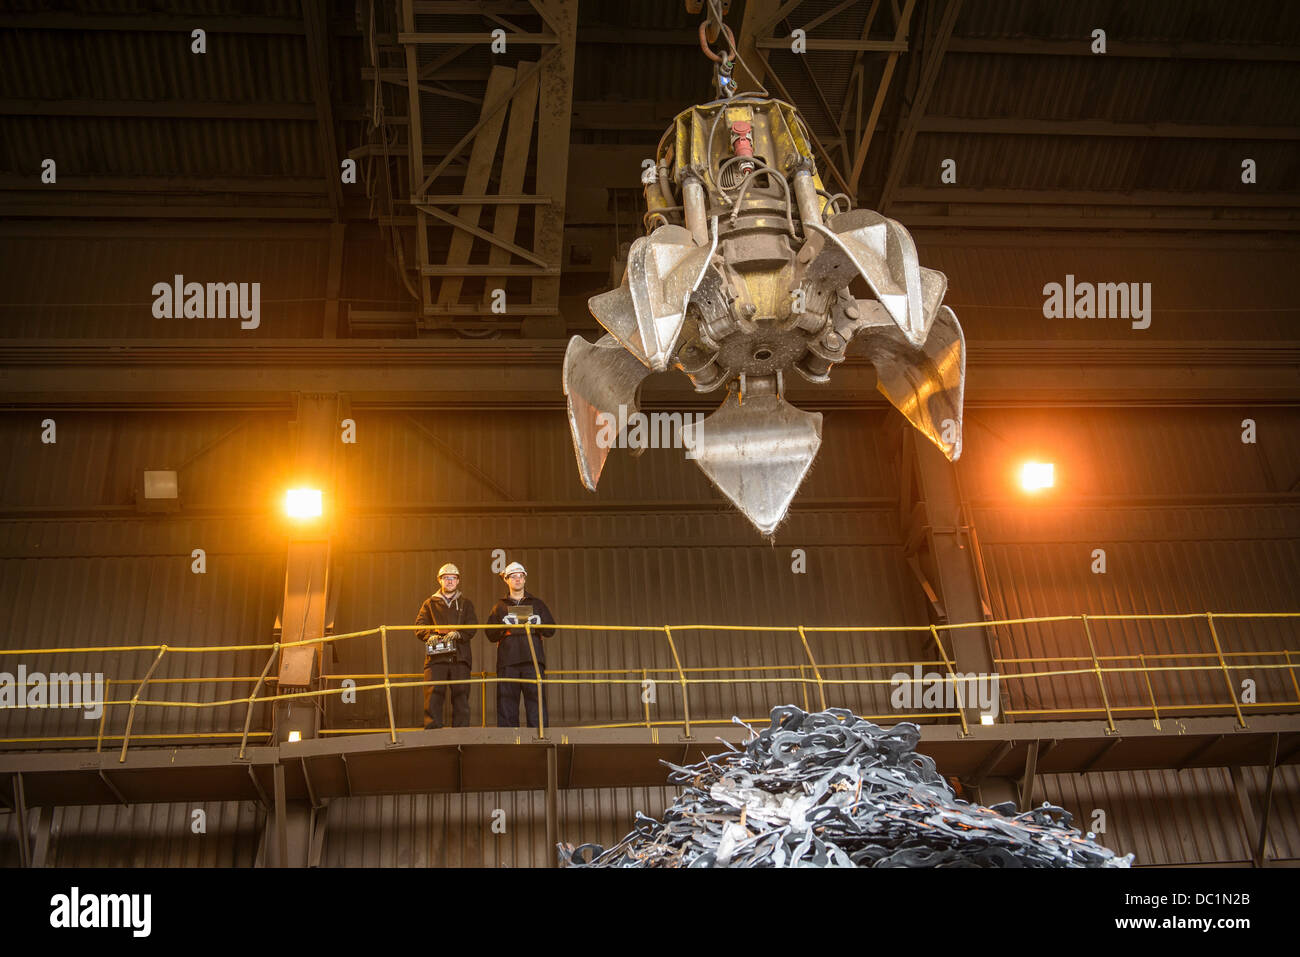 Steel workers overseeing mechanical grabber in steel foundry - Stock Image